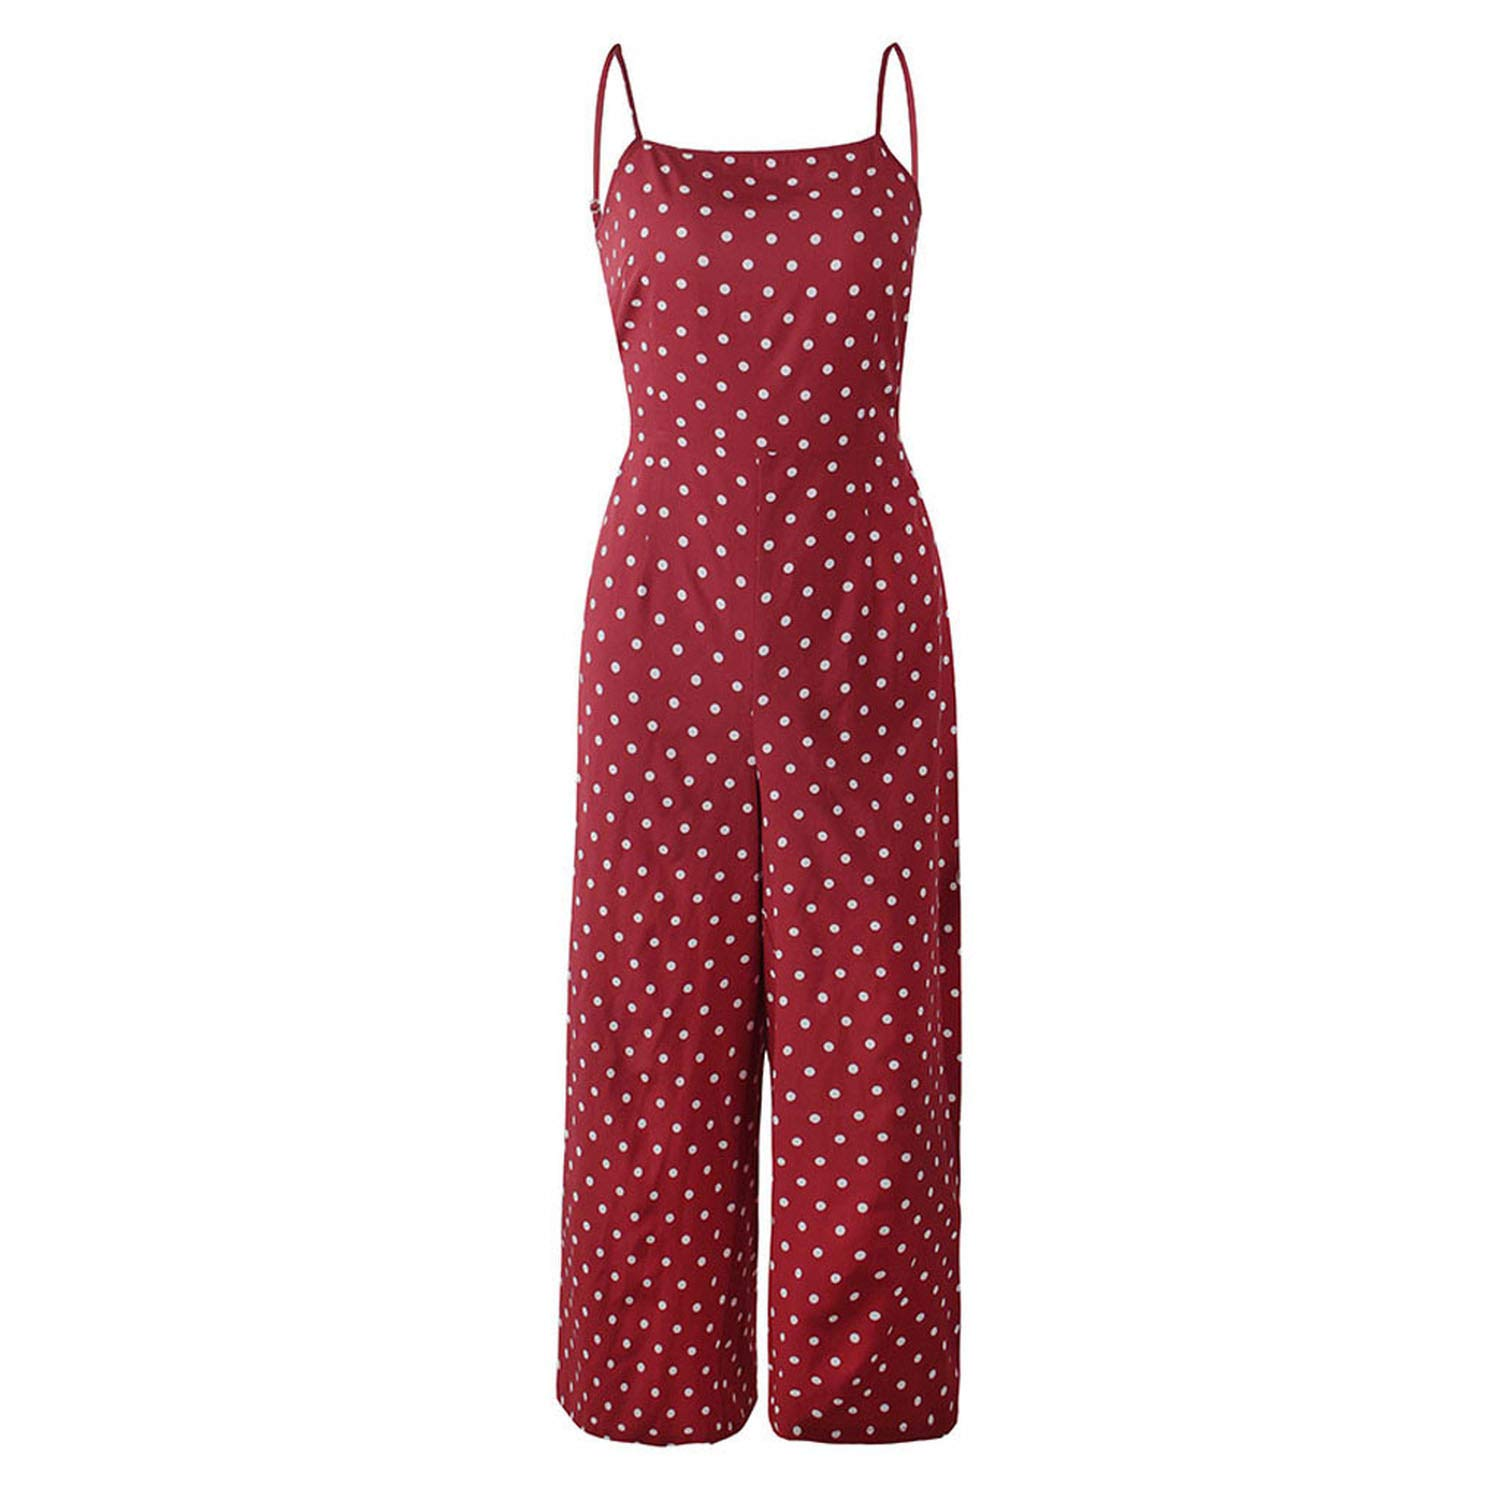 GALAXY-DF Womens Polka Dot Holiday Wide Leg Pants Long Jumpsuit Fashion Sleeveless Backless Strappy Playsuit De24